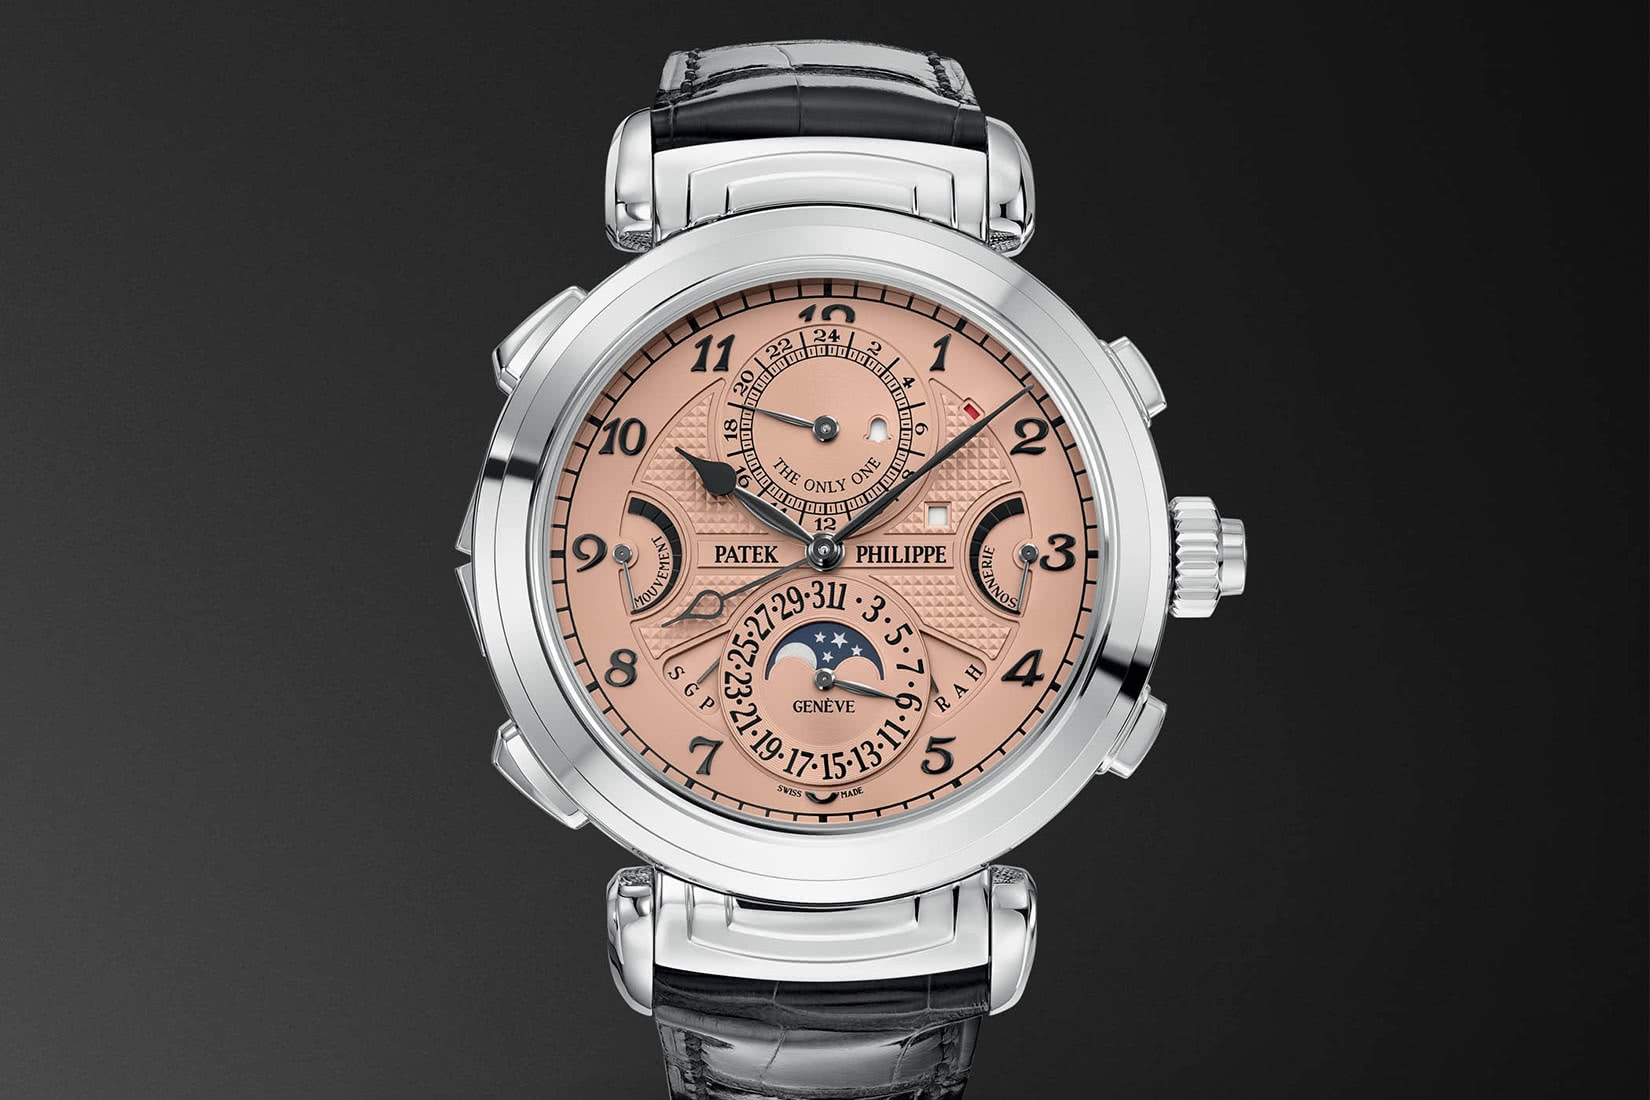 watch size range most expensive - Luxe Digital